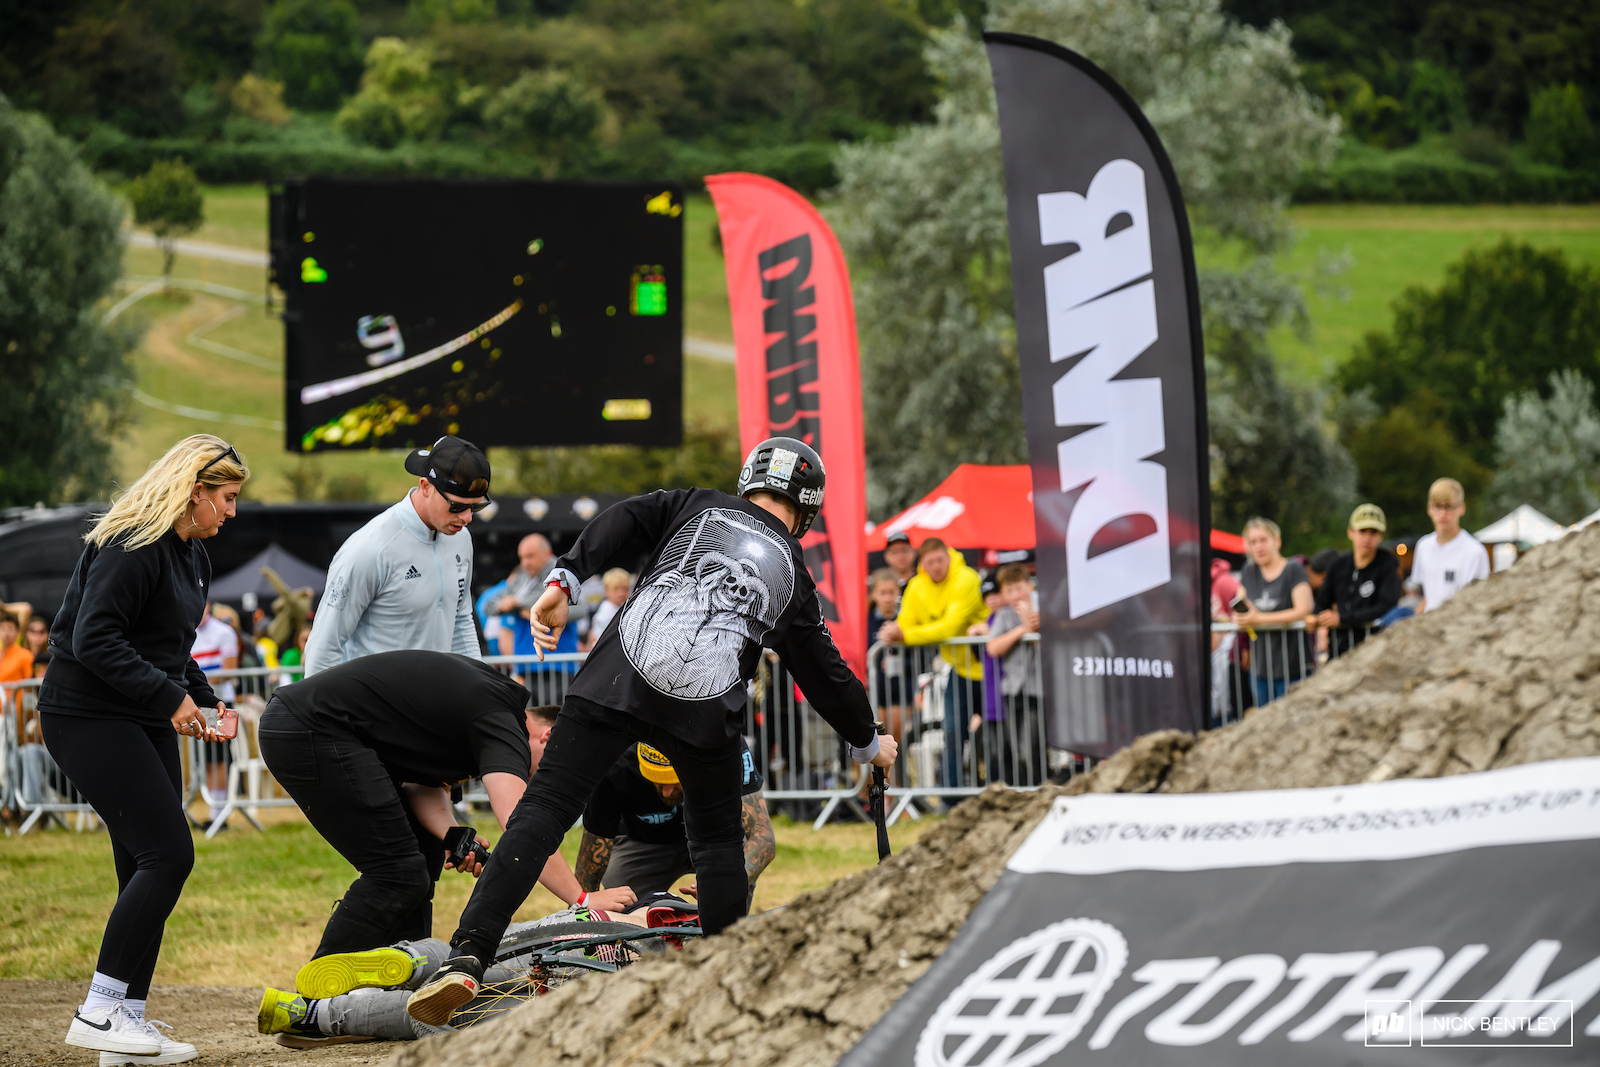 Unfortunately it was a rough day at The Malverns for injuries with some big crashes in multiple races culminating in this big slam for Fin Evans. With medical crews dealing with Fin and the other incidents there was an early end to the DirtWars competition. We wish Fin a speedy recovery.